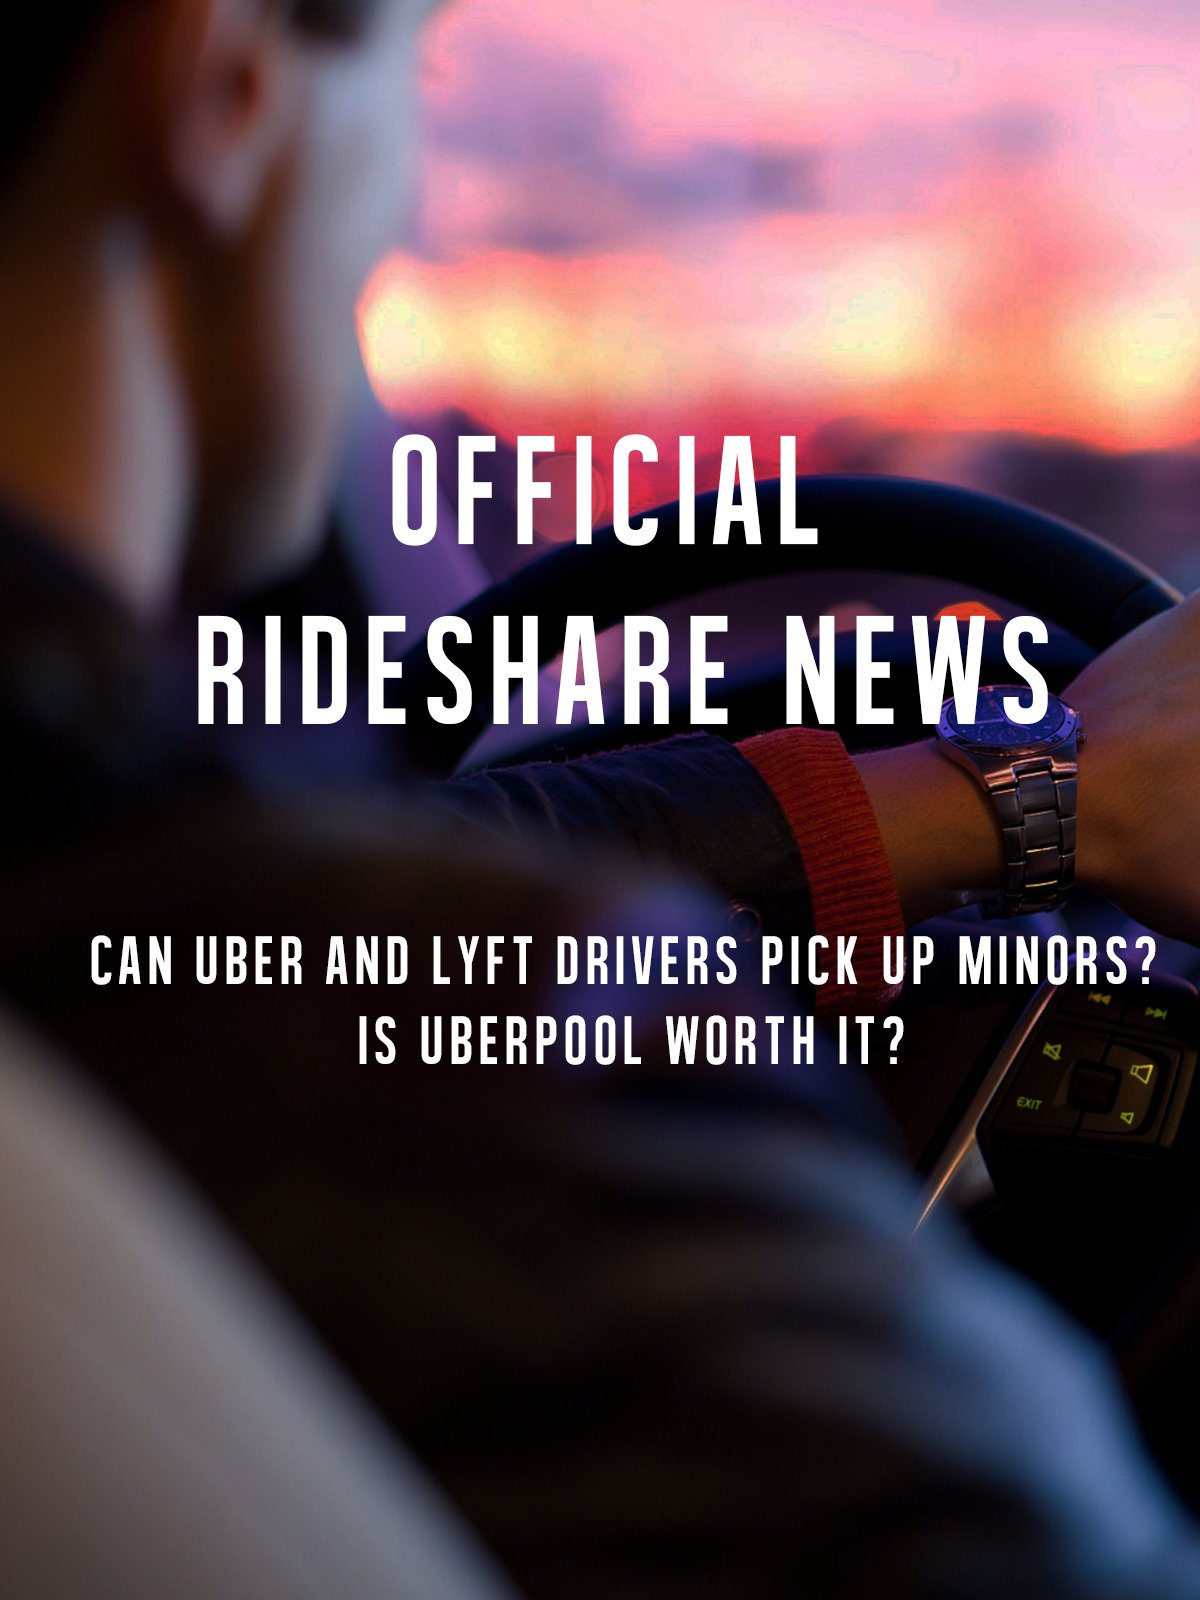 Official Rideshare News: Can Uber and Lyft Drivers Pick Up Minors? Is UberPOOL worth it?